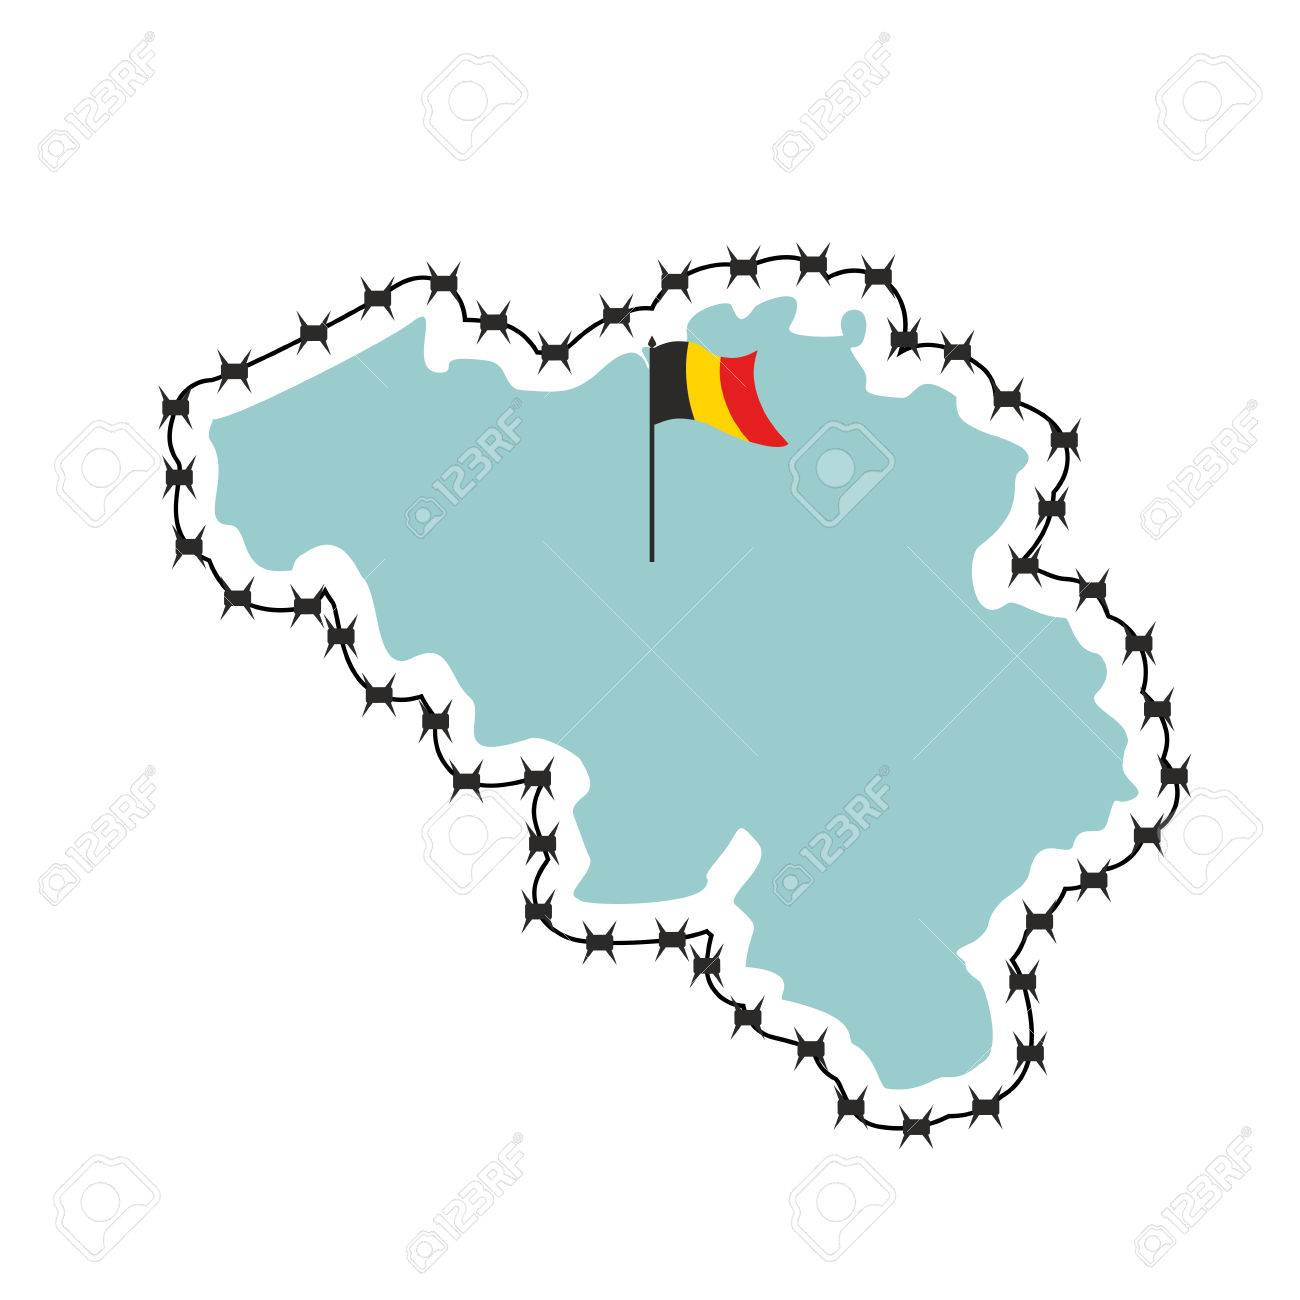 Belgium Map Map Of States With Barbed Wire Country Closes Border - Clipart us map border security